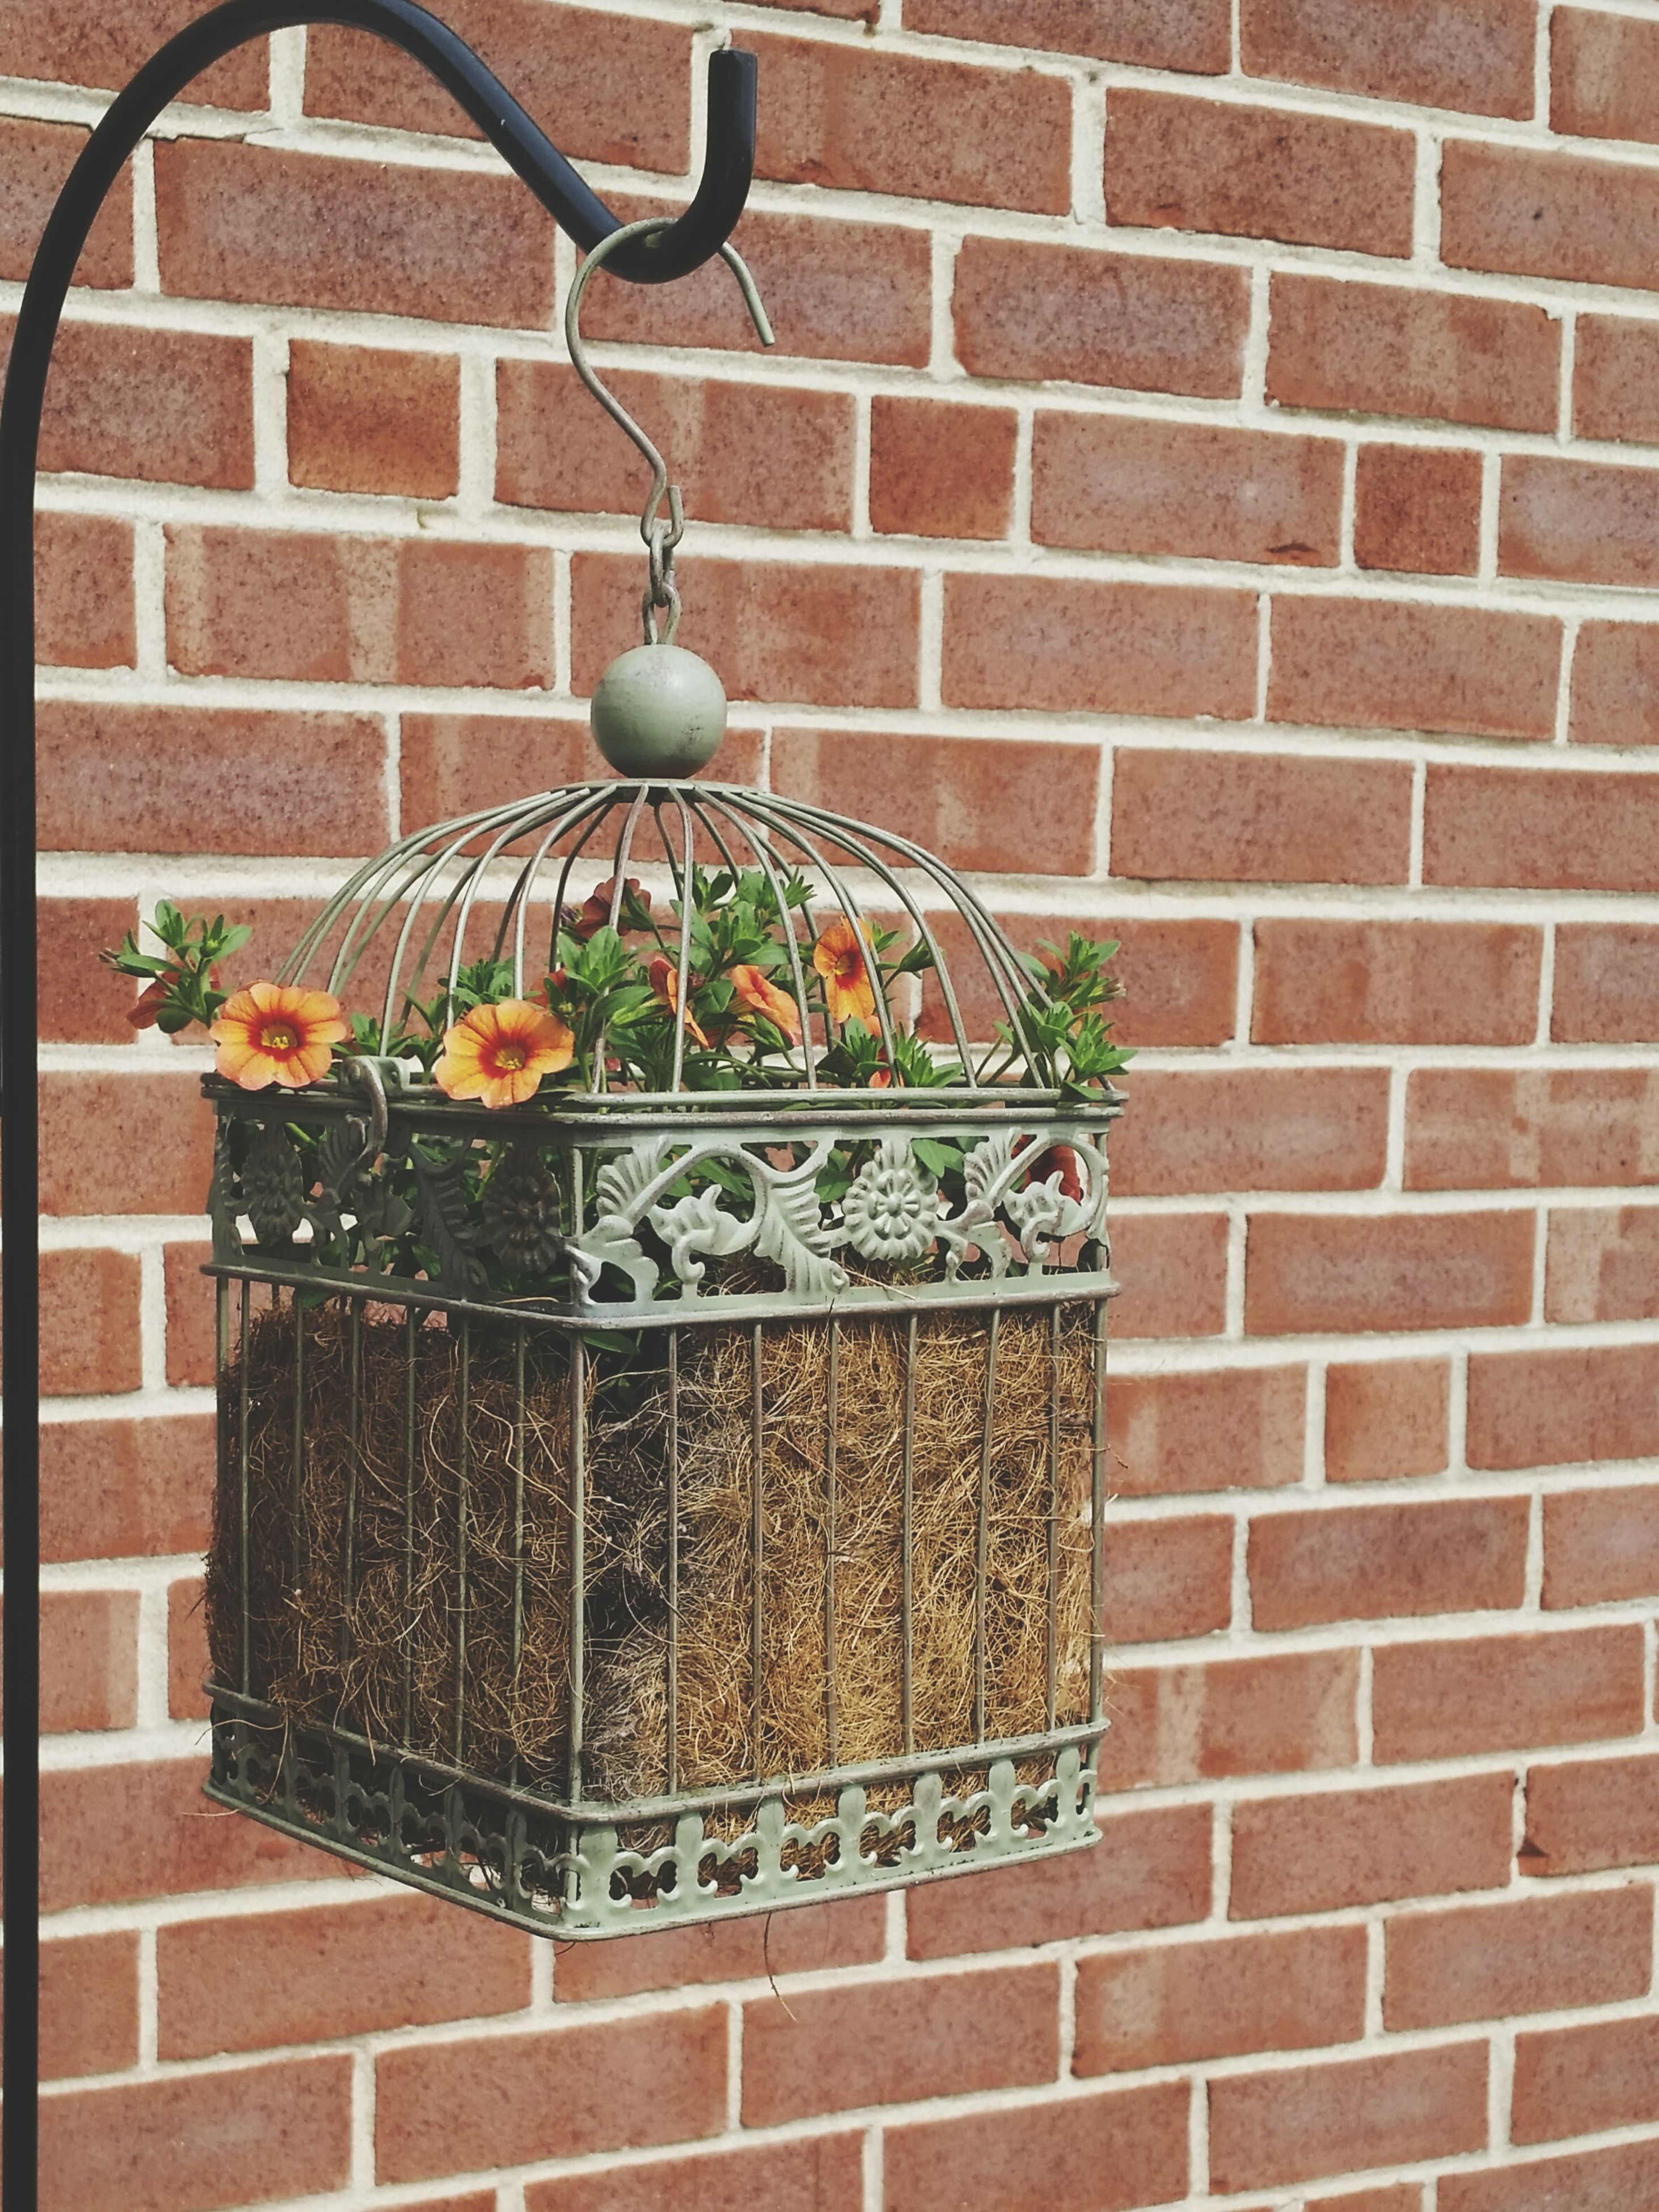 brick wall, wall - building feature, architecture, built structure, potted plant, building exterior, wall, flower, hanging, plant, decoration, flower pot, growth, lantern, no people, day, outdoors, stone wall, lighting equipment, close-up